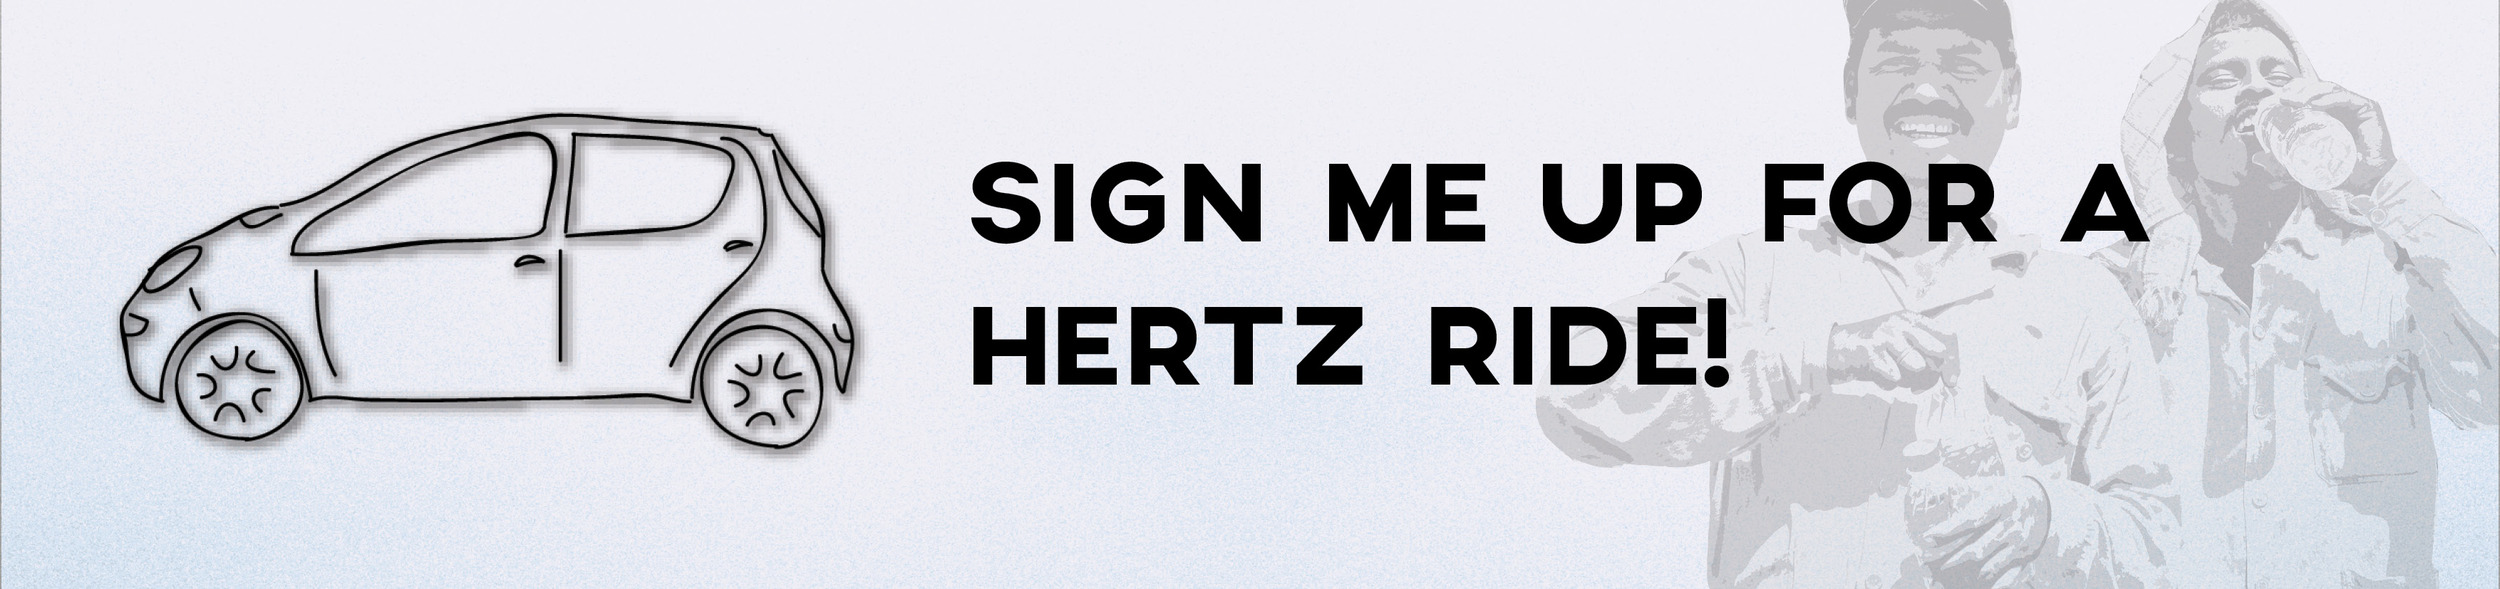 SIGN ME UP FOR A HERTZ RIDE!